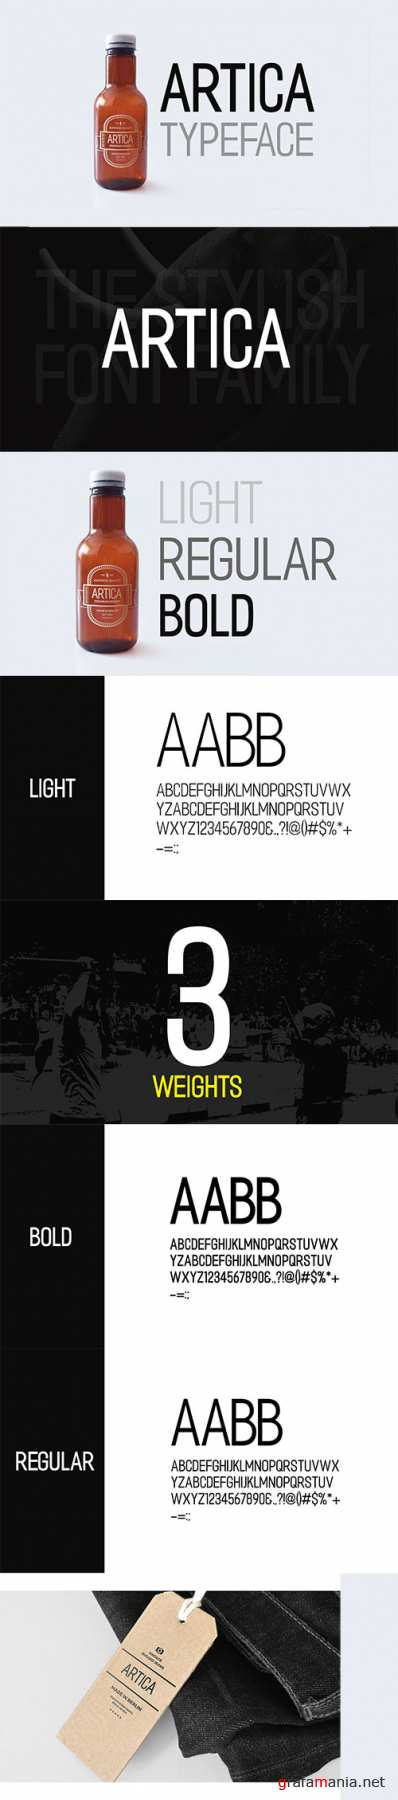 ARTICA - Display Typeface + Web Font 2313149